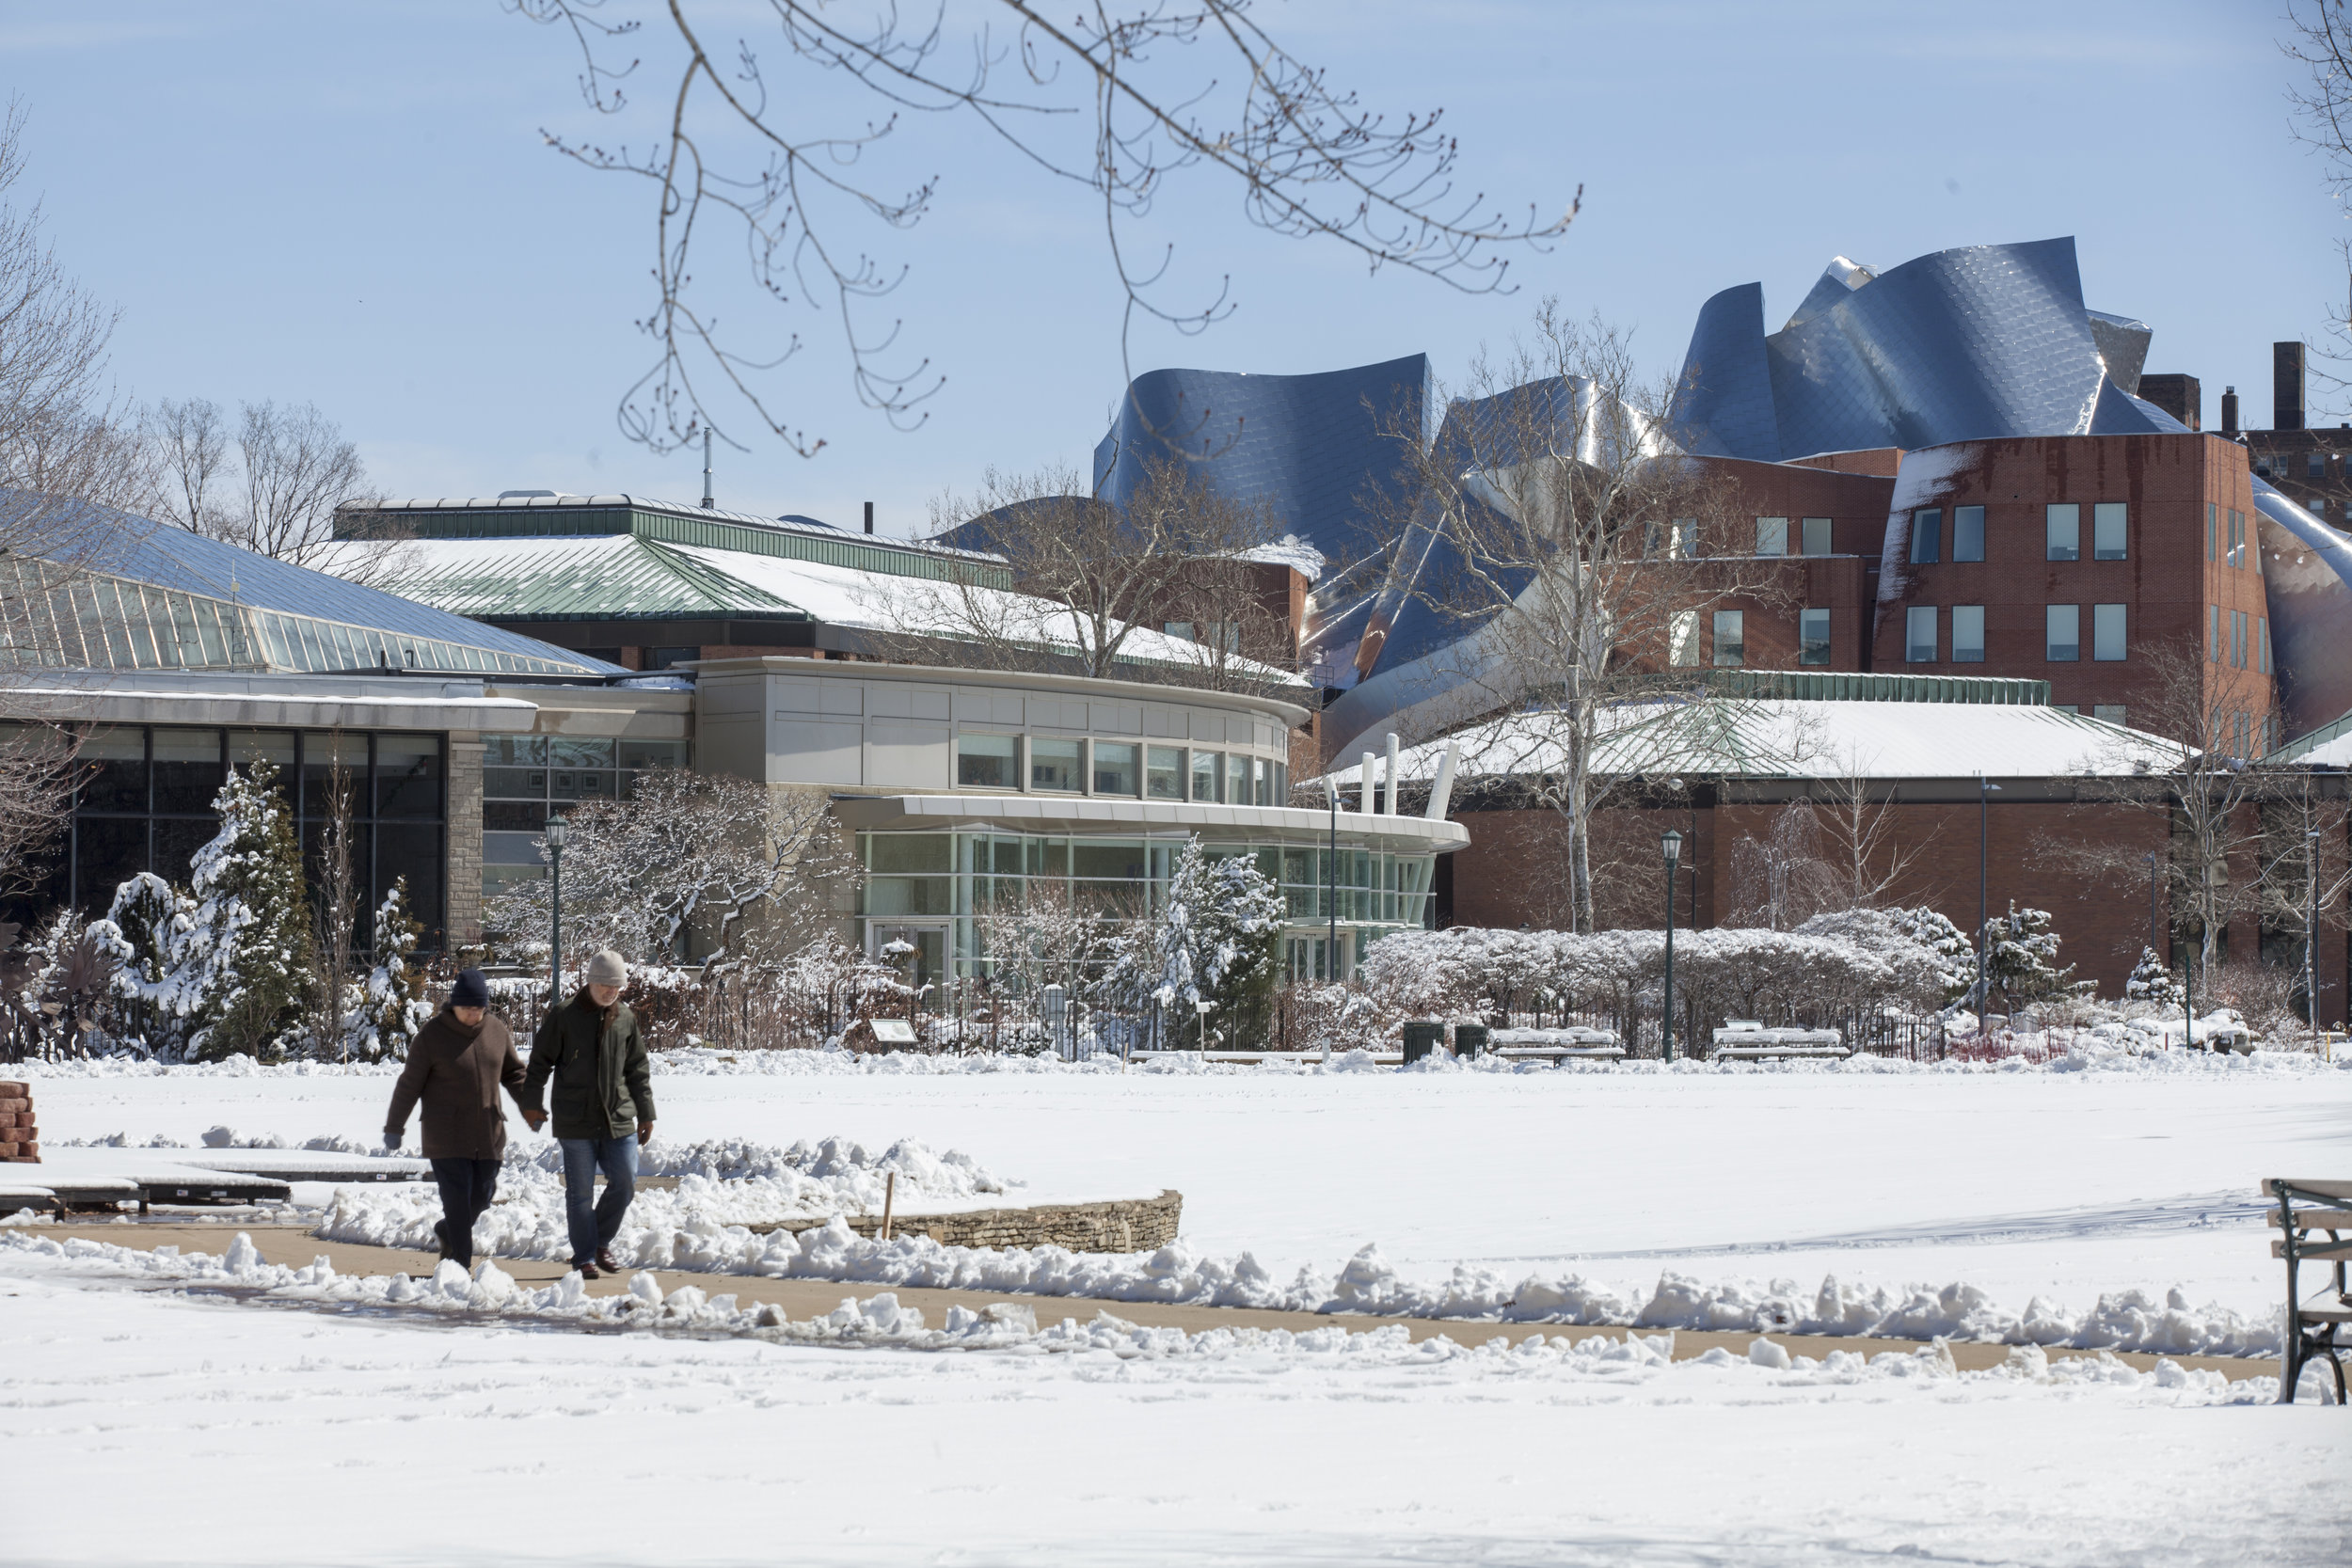 Case Western Reserve University, with a staff of more than 6,000 and an annual budget topping $1 billion, offers huge economic opportunity for local residents.